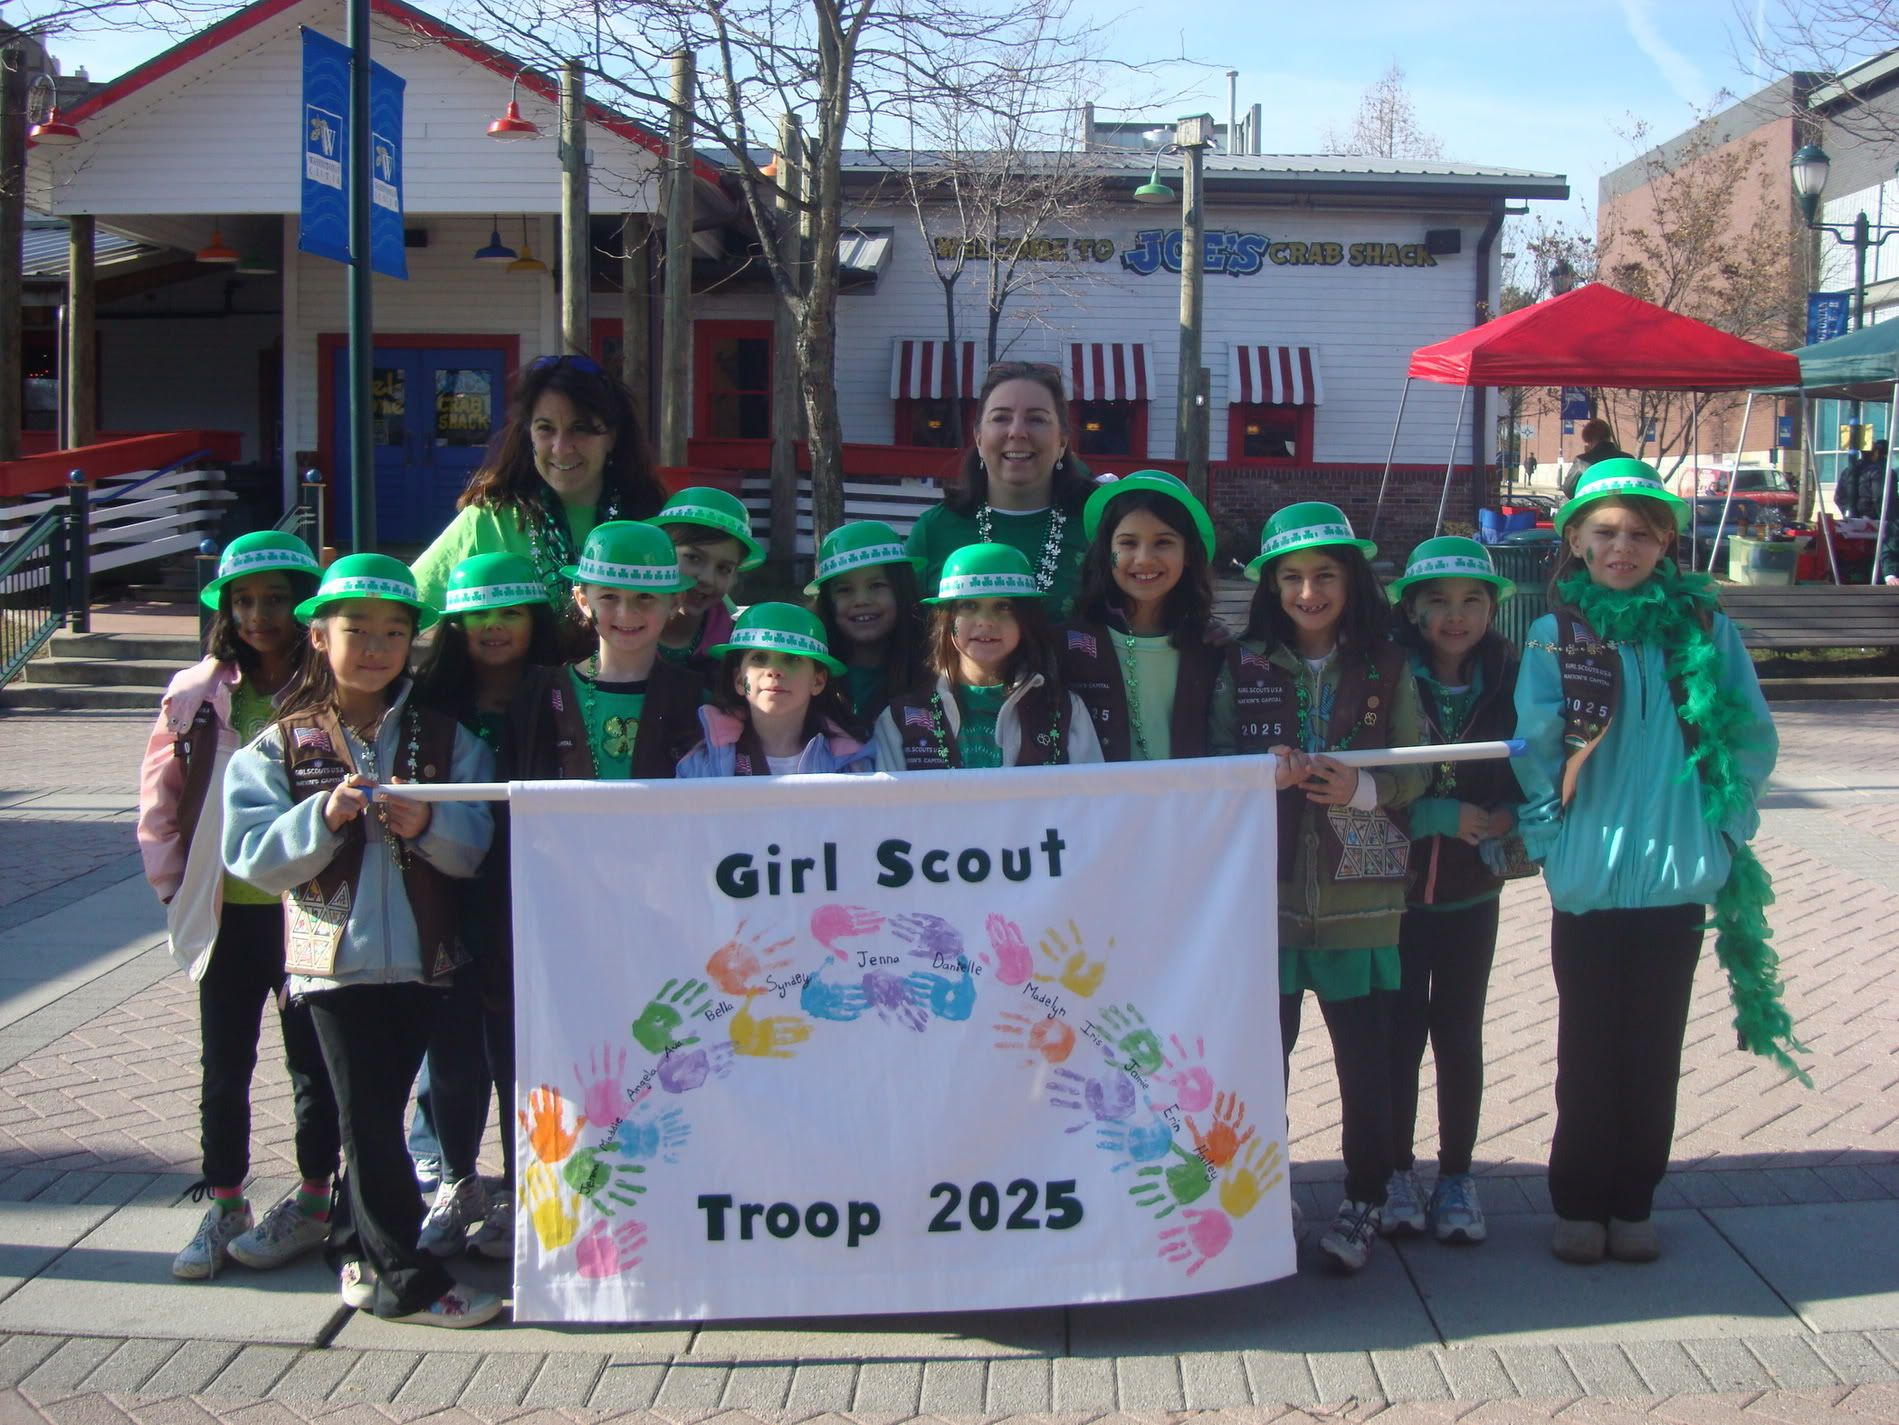 Girl scout scrapbook ideas - Girl Scouts Marched In Saint Patrick S Day Parade Photo Girl Scouts From Brownie Troop 2025